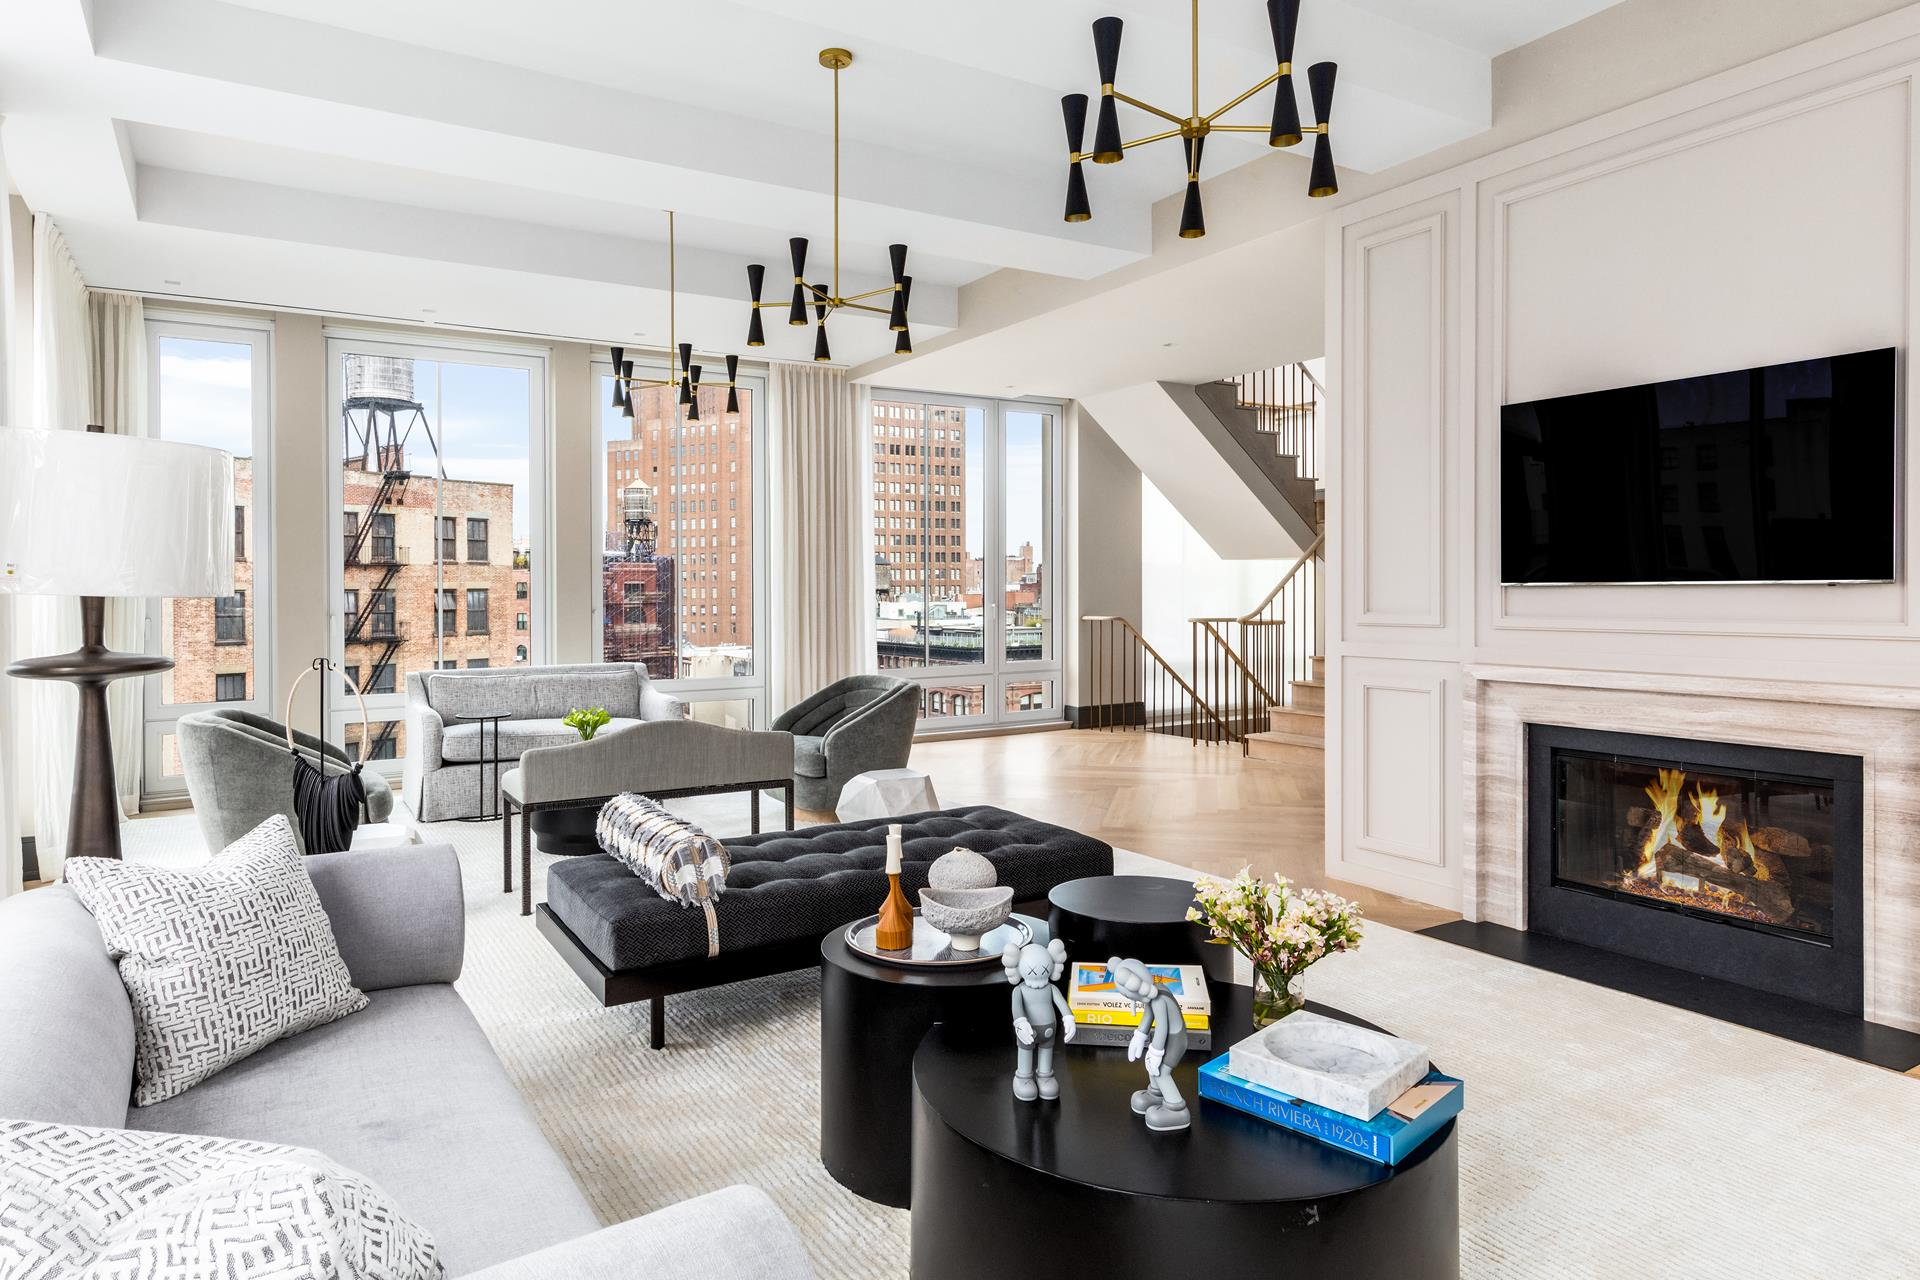 Located on a quiet stretch of road just moments from the finest restaurants, world-class shopping, and high-end art galleries lining Tribeca's uncrowded streets, this charismatic 7,261 SF+/- residence includes 6 bedrooms, 6 full and 1 half bathrooms, completely custom finishes throughout, iconic city views, three balconies, and a private rooftop, plus unbeatable amenities-the is an incredible opportunity to own one of just seven units in a building that offers on-site parking, a 24-hour gym, and 24-hour doorman.A true rarity, this fully customized contemporary haven boasts unparalleled access to the outdoors with not one but three spacious balconies facing two directions and an expansive private rooftop terrace..24 Leonard Street offers everything you desire in a city home, including an automated onsite parking garage where one can purchase or rent unlimited parking spots and over 9,000 SF+/- of breathtaking indoor/outdoor living space.Luxurious amenities like a private elevator lobby and state-of-the-art security system ensure peace of mind, while recessed lighting and sophisticated, mid-century chandeliers throughout the penthouse cast a warm glow over every custom-dressed interior space.White oak herringbone floors carry you from one spacious sun-drenched room to another where no detail has been overlooked and unique custom fixtures add interest to an altogether easygoing, minimalist aesthetic. Experience large open spaces with floor-to-ceiling windows wrapped in custom wallpaper, millwork, and stylish marble accents you won't find anywhere else in the city.On the main level, a bright living room with fireplace and multiple seating areas opens out to the south-facing terrace via three sets of glass doors. A formal dining room with terrace access and enough space for a sizable dinner party connects the living area to the absolutely stunning chef's kitchen. In the kitchen, a line of windows captures the view and sheds light on custom cabinetry, high-end appliances,